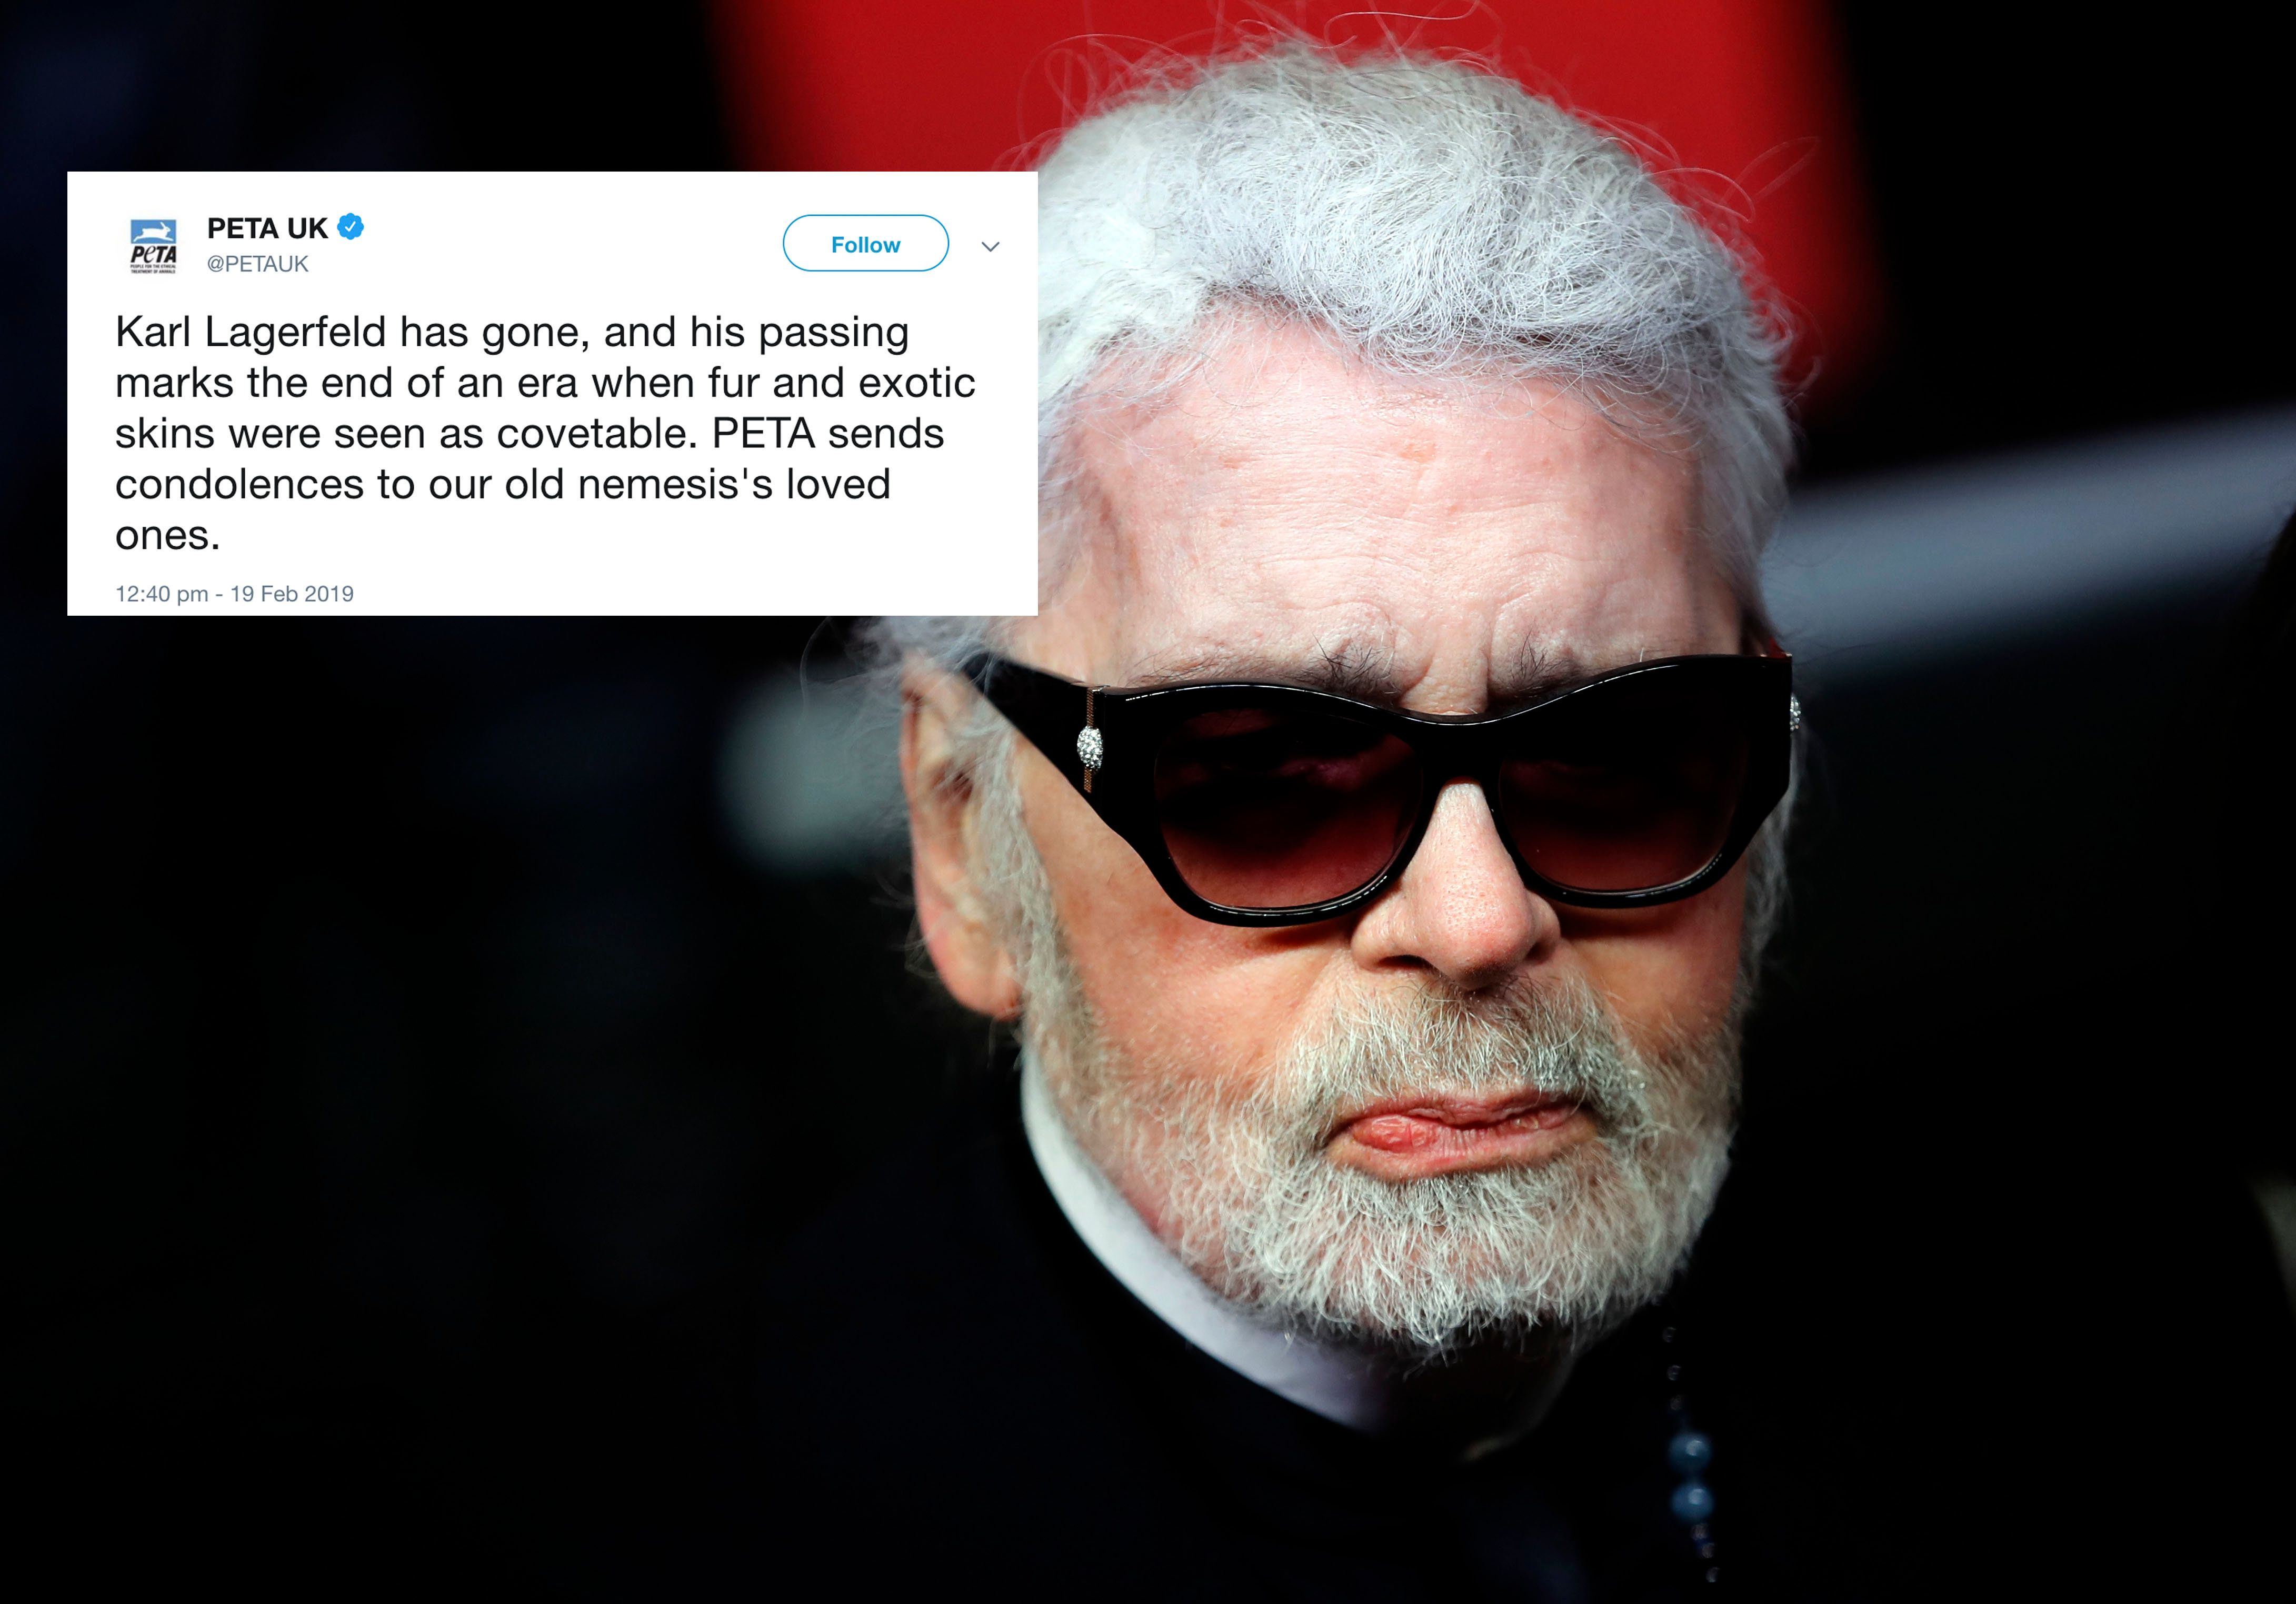 PETA Responds To Karl Lagerfeld Death With 'Gobsmacking' Tribute To 'Old